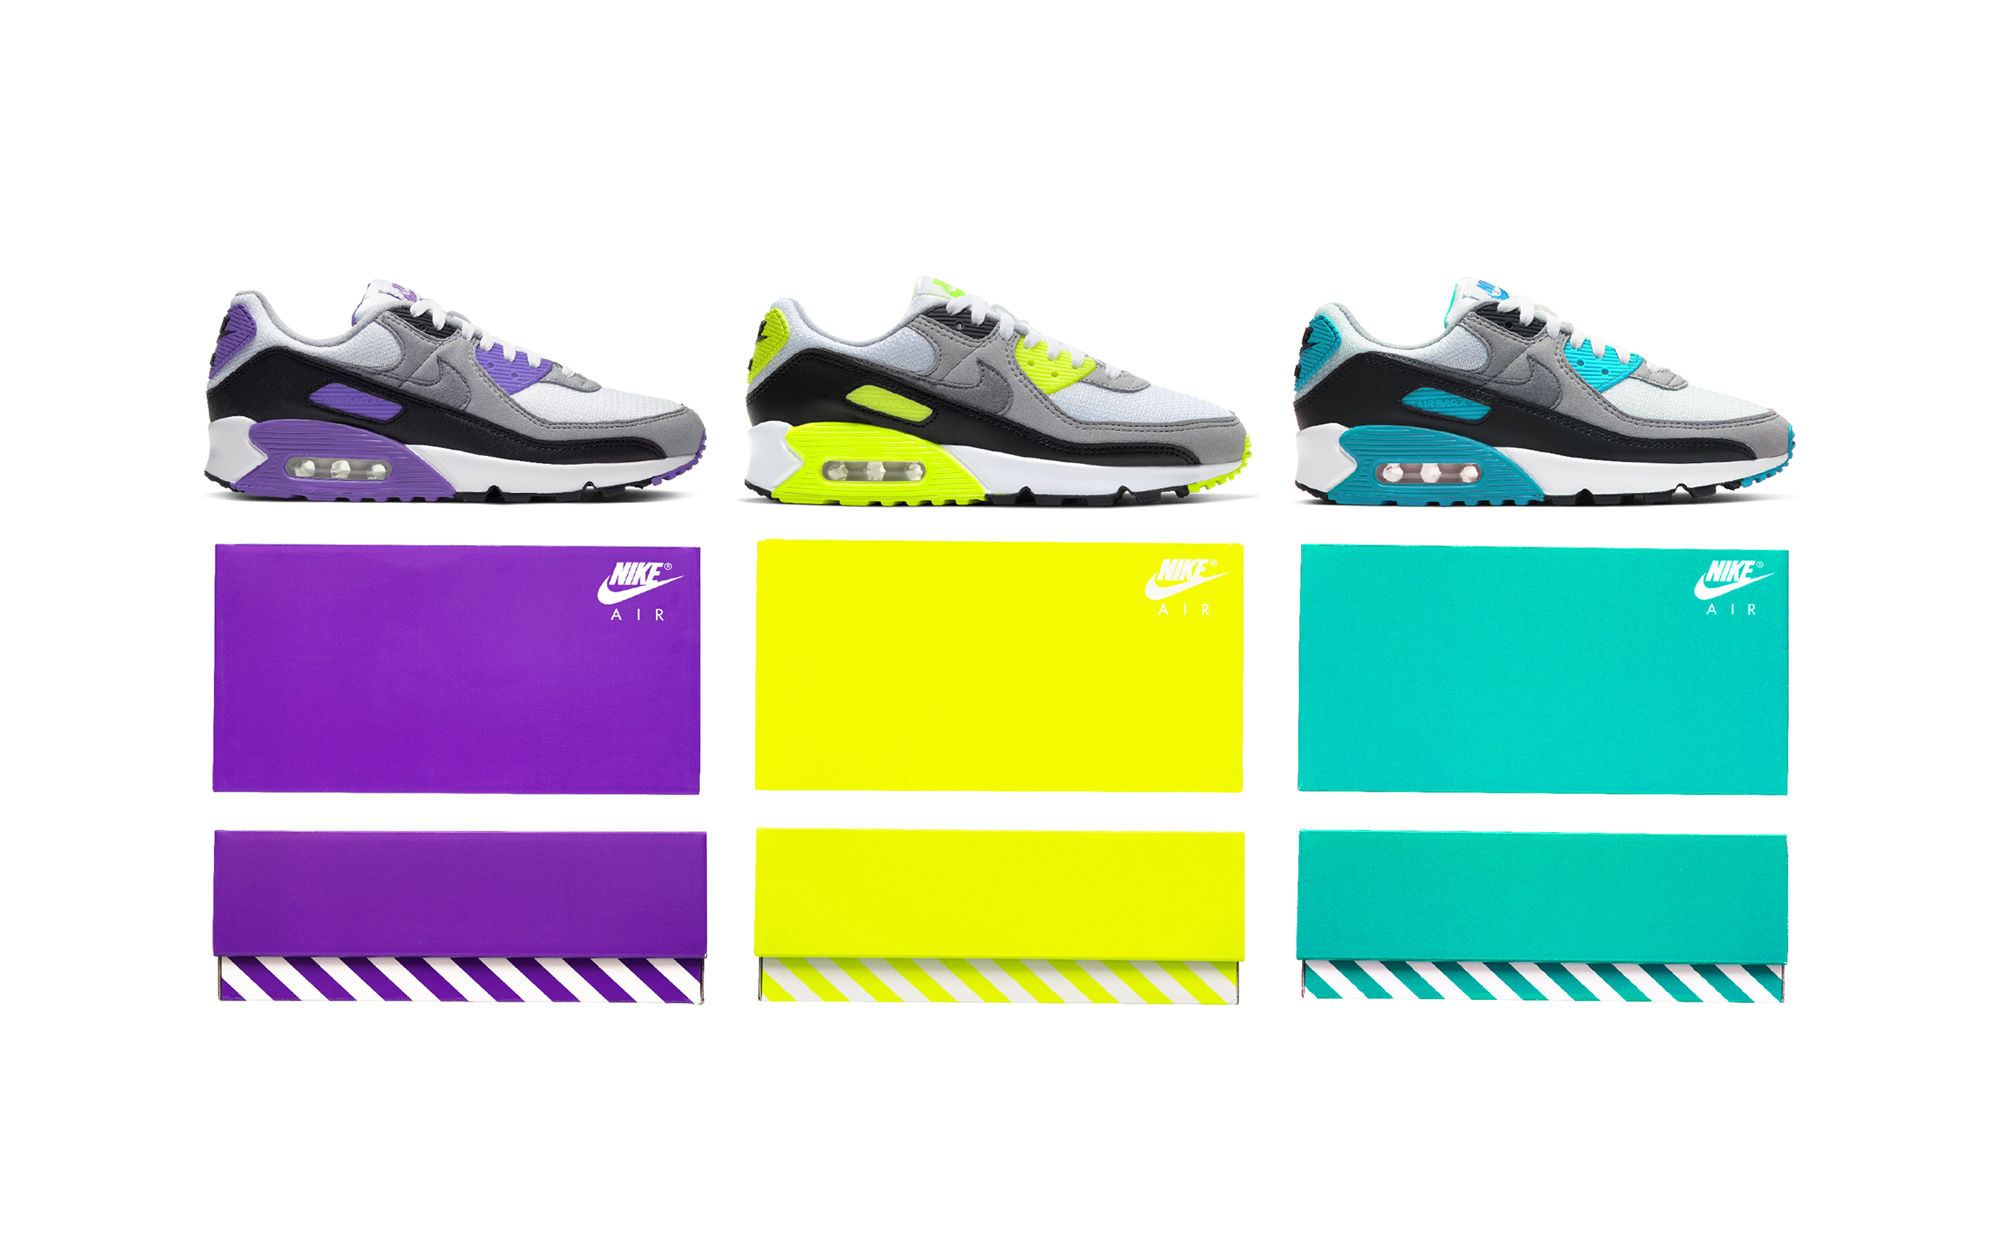 Nike Air Max 90 – The Changes